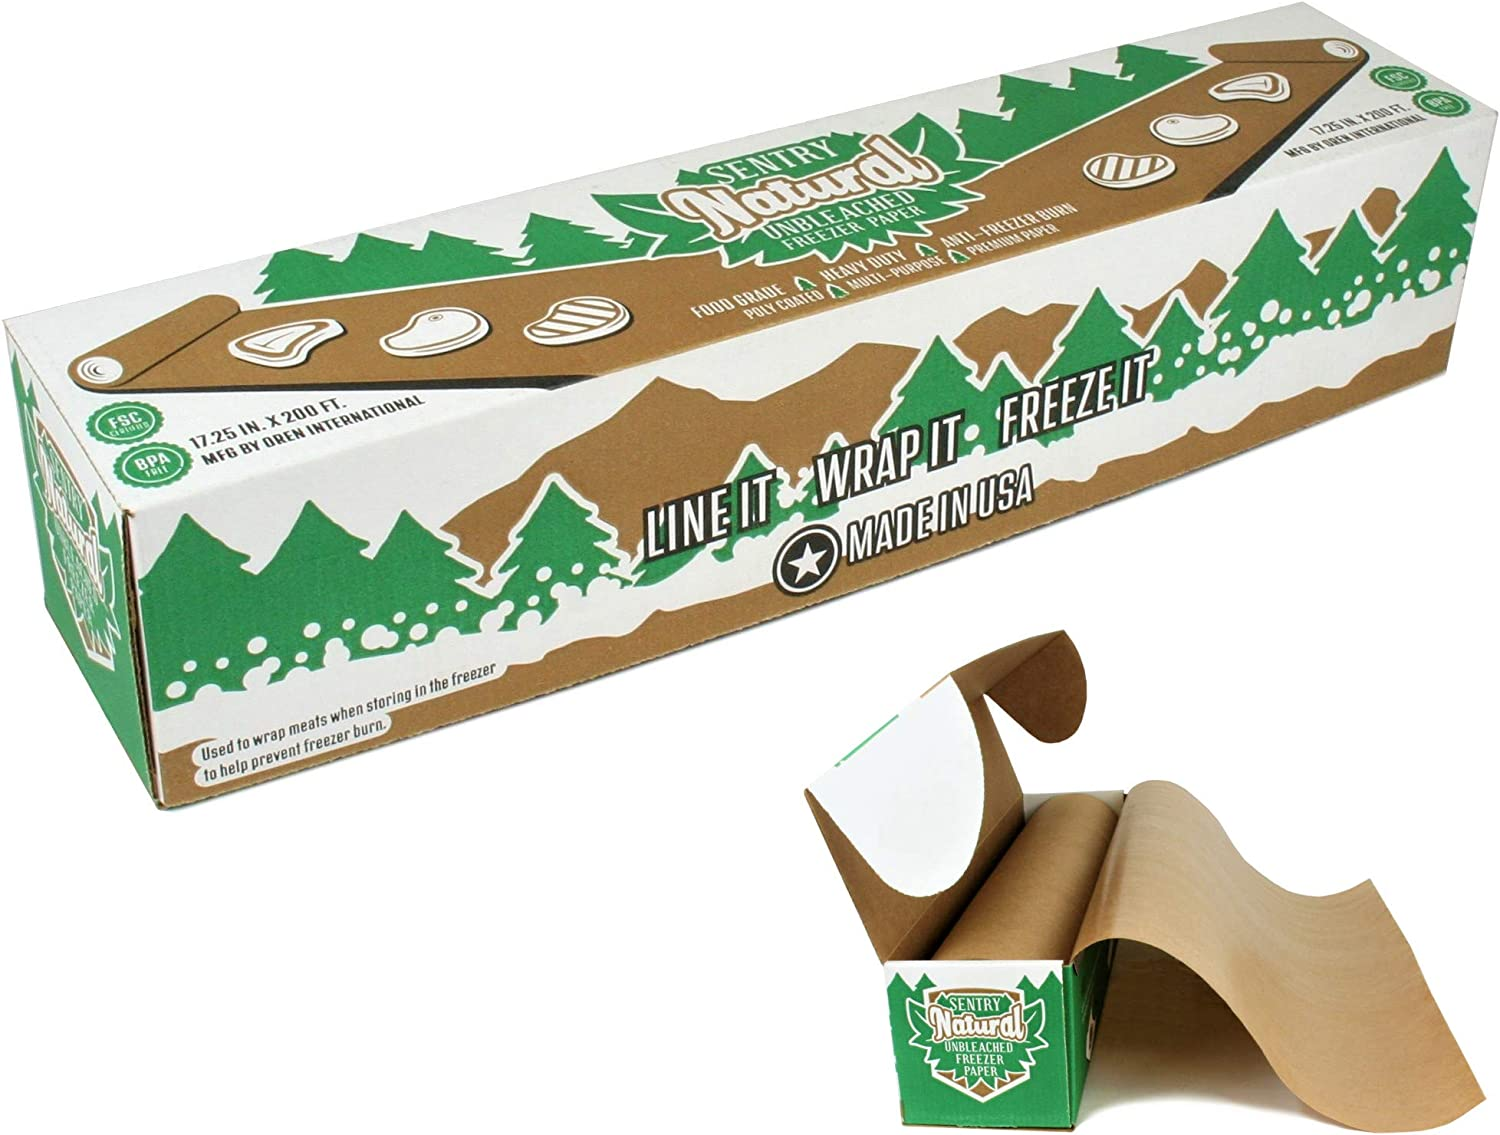 """Natural Freezer Paper Roll With Dispenser Box   17.25"""" x 200' (288 sq. ft.)   Best Wrapping Paper for Food and Meats   Protects Against Freezer Burn   Poly Coated & Moisture Resistant   BPA Free"""